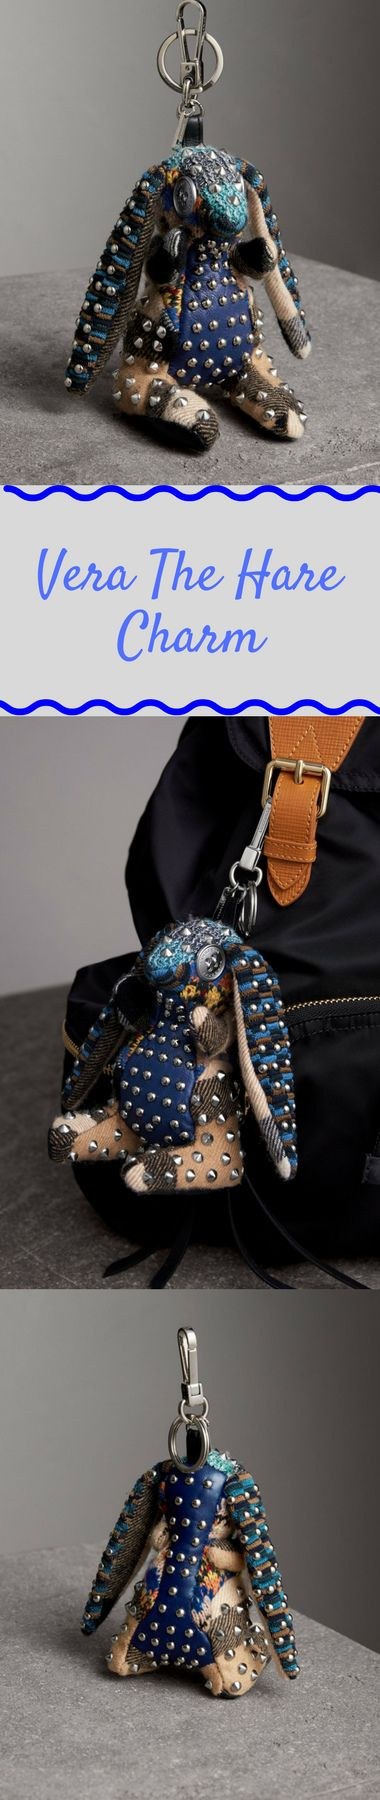 A charm in studded cashmere and leather. Playful mismatches of fabrics and fastenings are stitched together to create the whimsical new characters. Attach to a day bag for an animated accent. #burberry #charms #handbagAccessories #luckyCharm #keychains #gifts #giftIdeas #ChristmasGifts #birthdayGifts #realtorsGift #giftsForHer #mom #cute #fab #fashionista #realtorLadies #love #ad